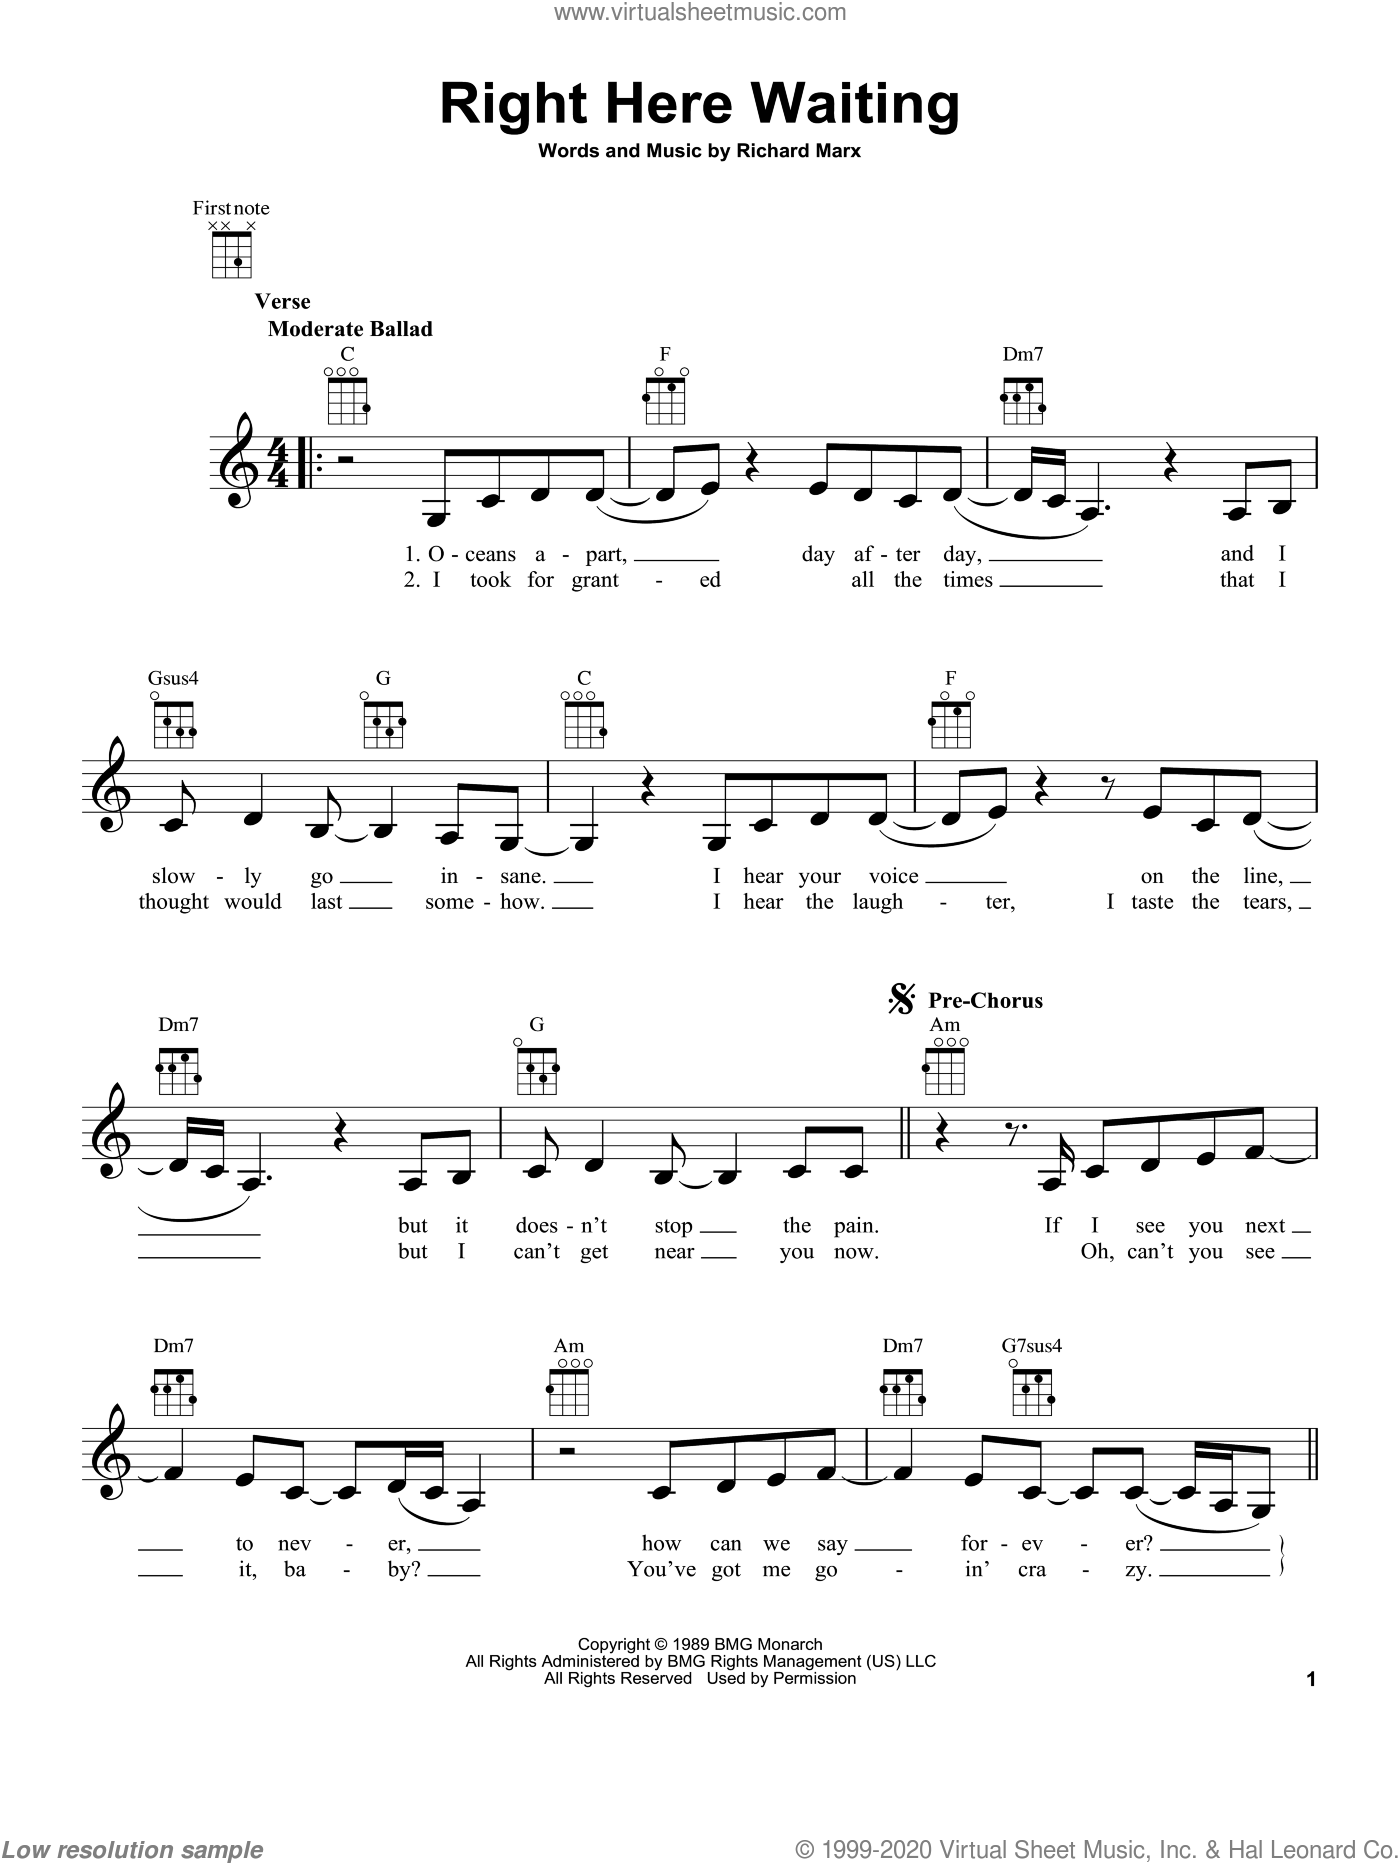 Right Here Waiting sheet music for ukulele by Richard Marx, intermediate